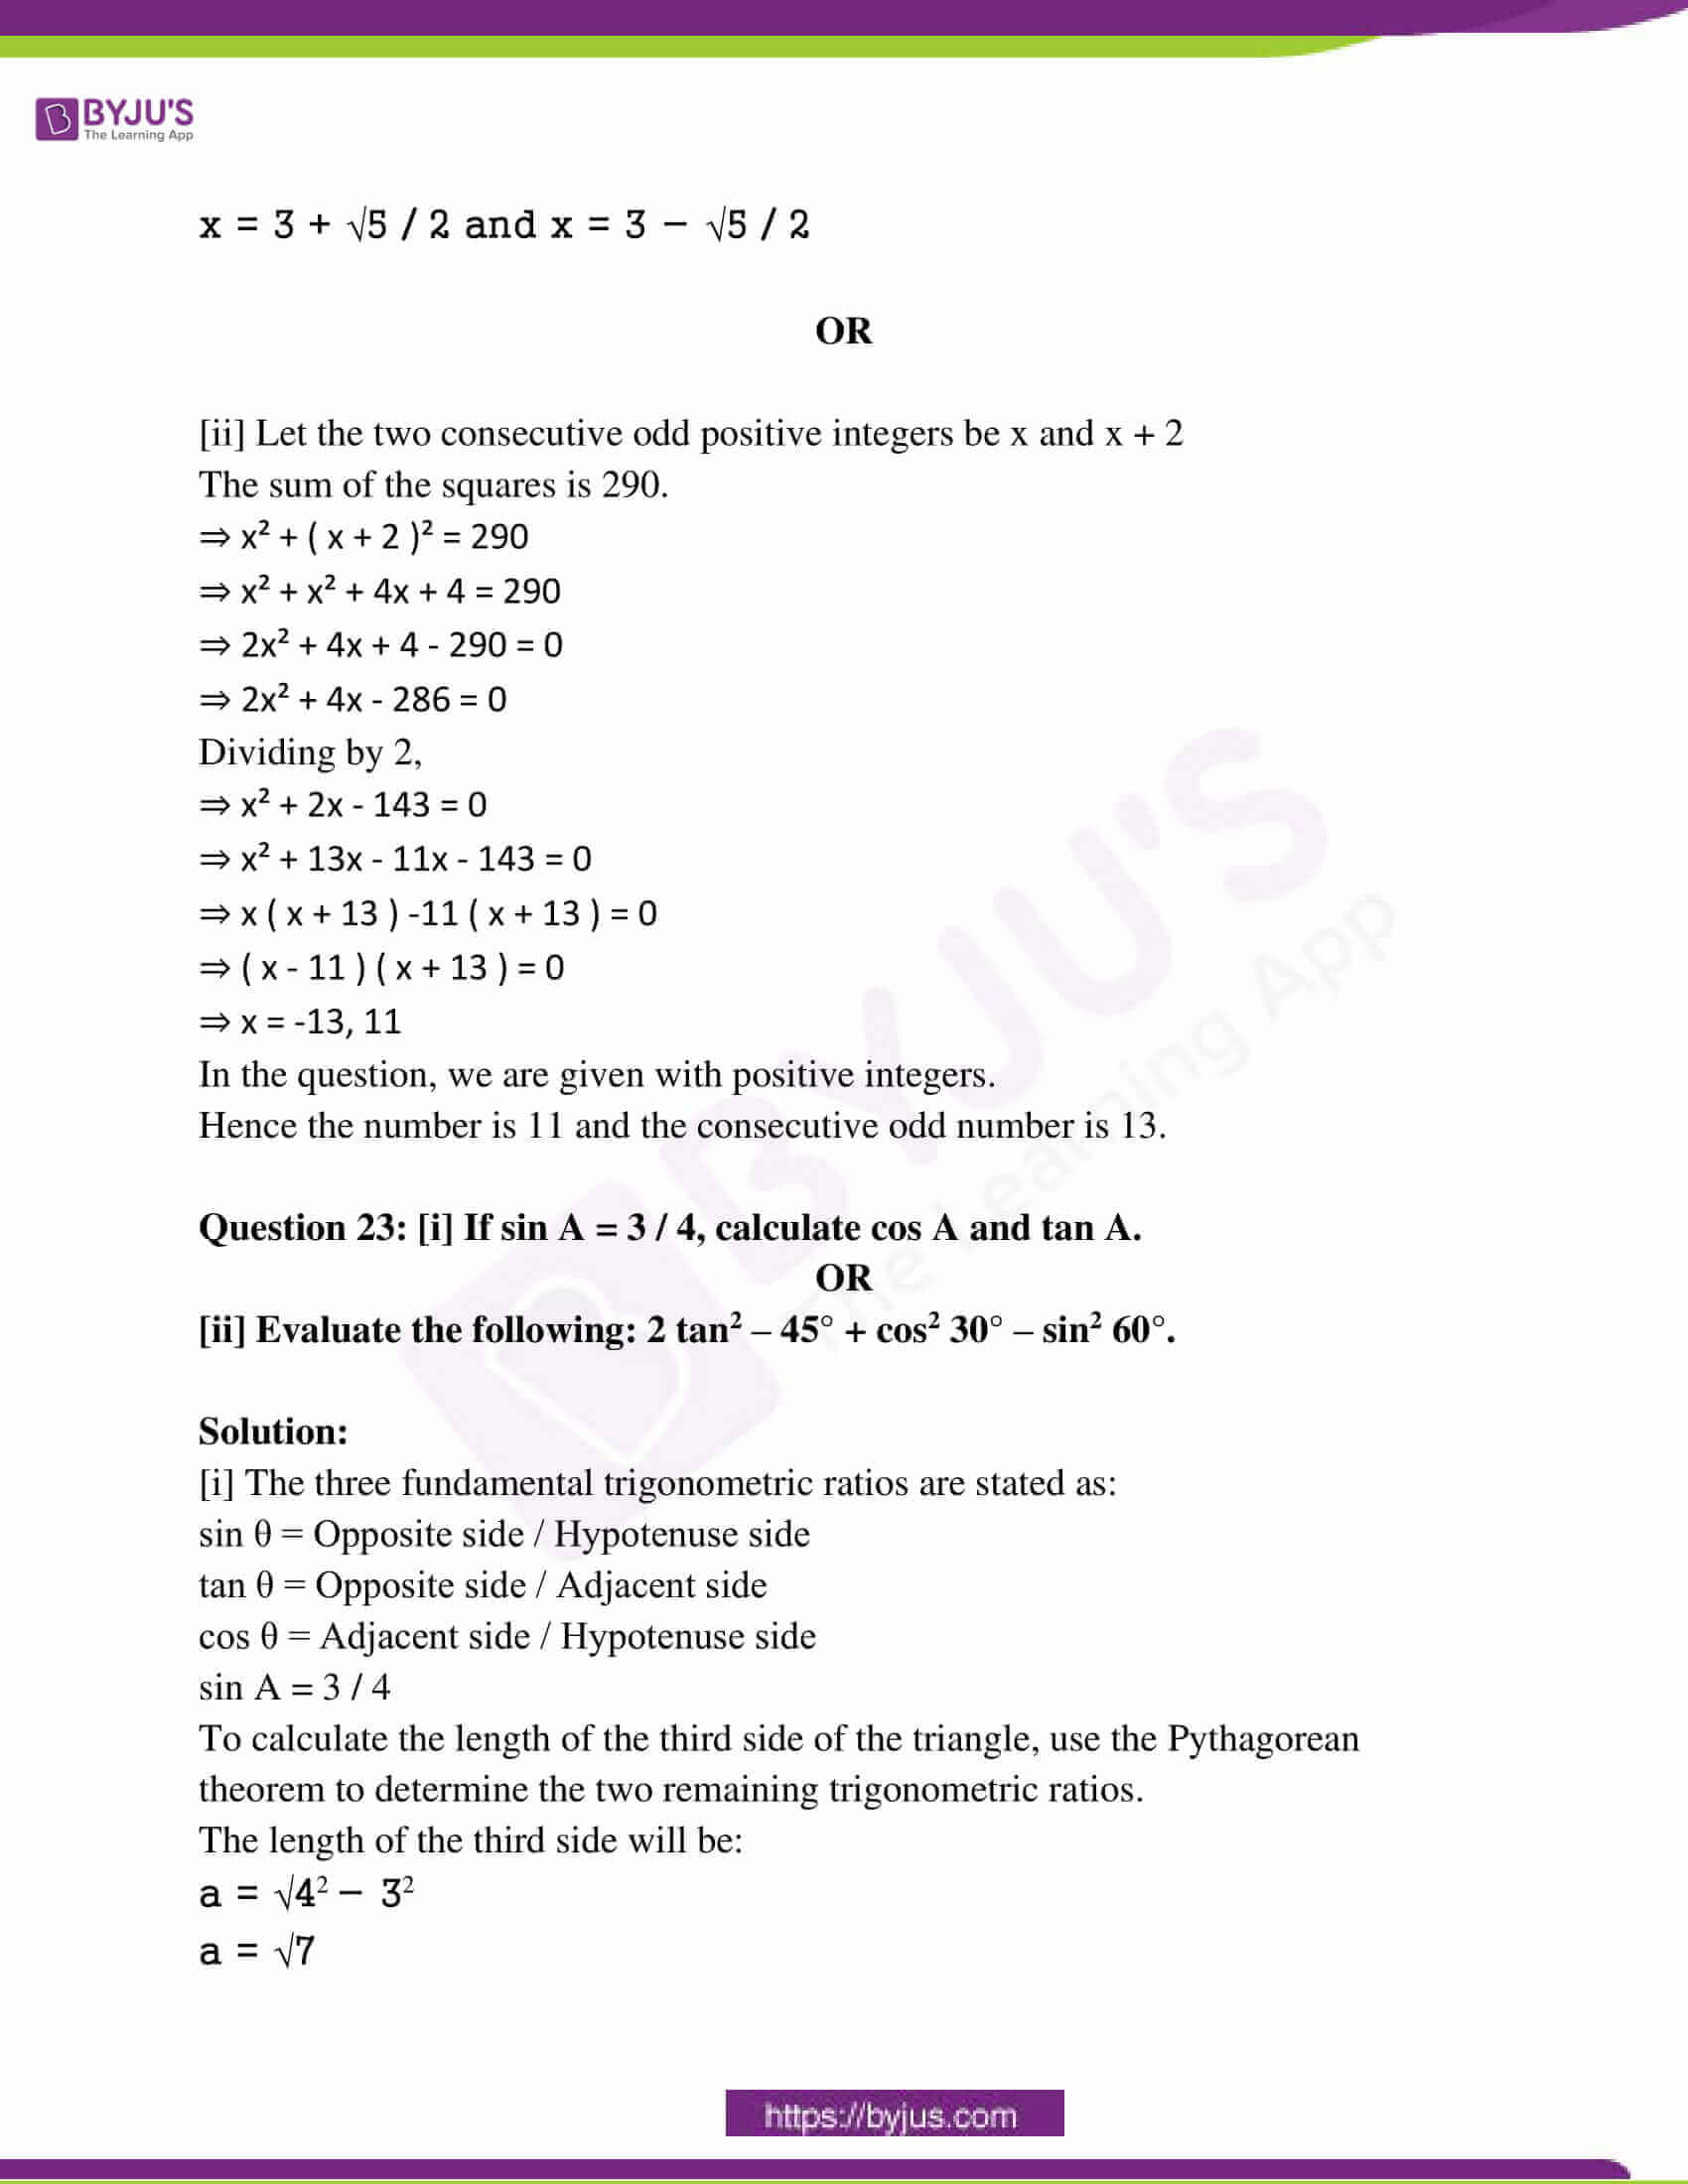 mp class 10 exam question paper with solutions march 2019 22